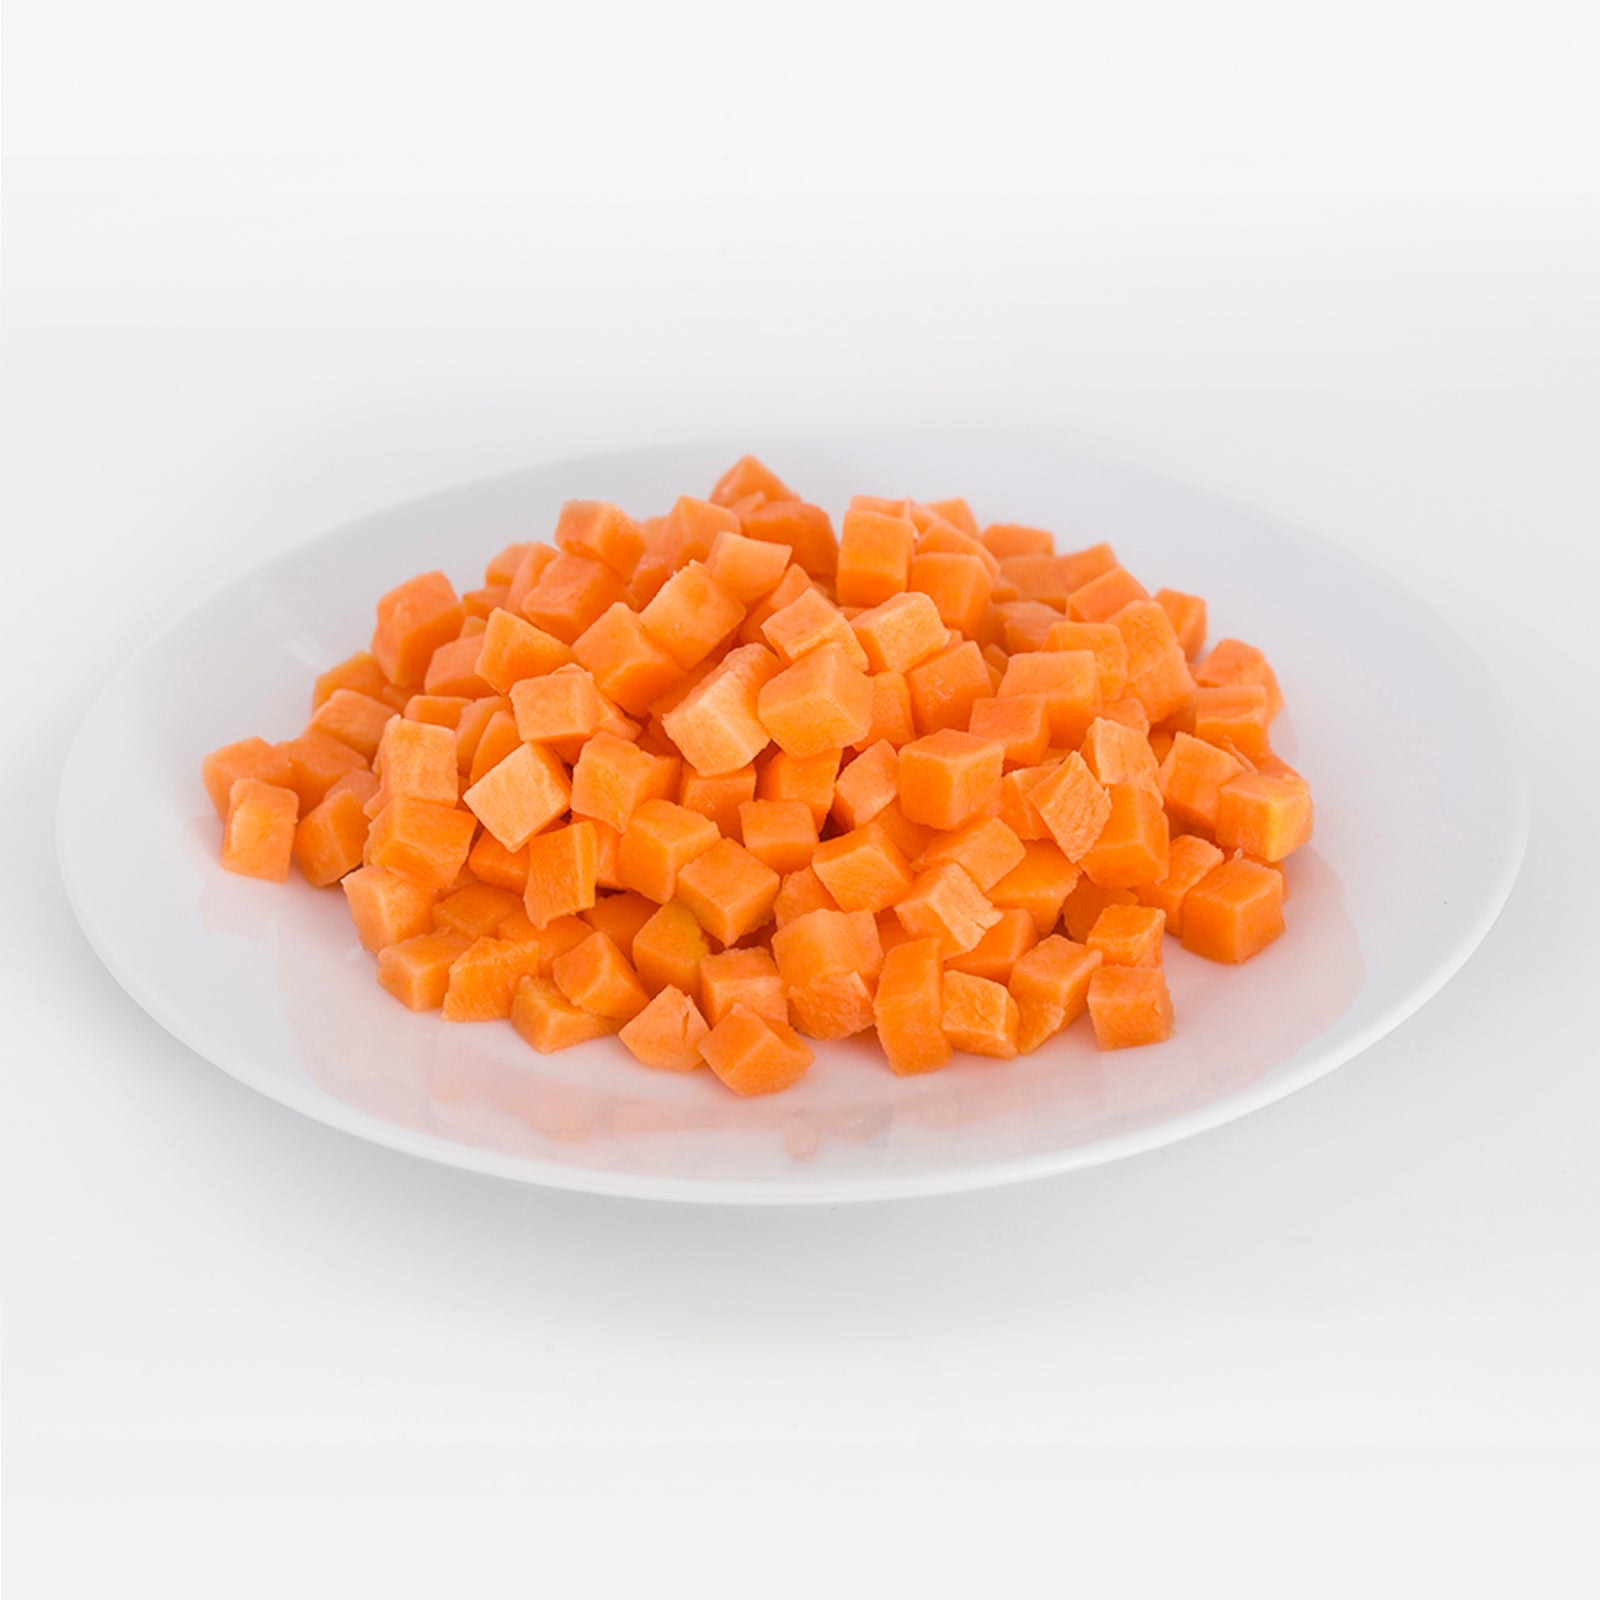 BELOW ZERO Diced Sweet Potatoes